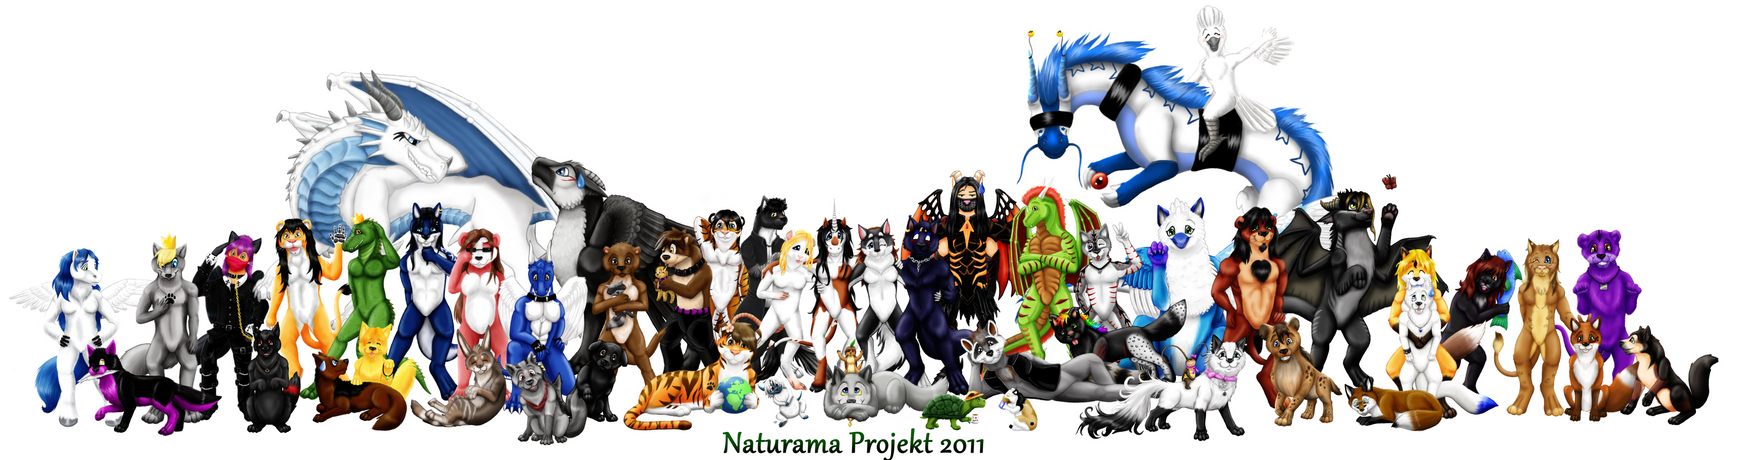 Naturama Group 2011